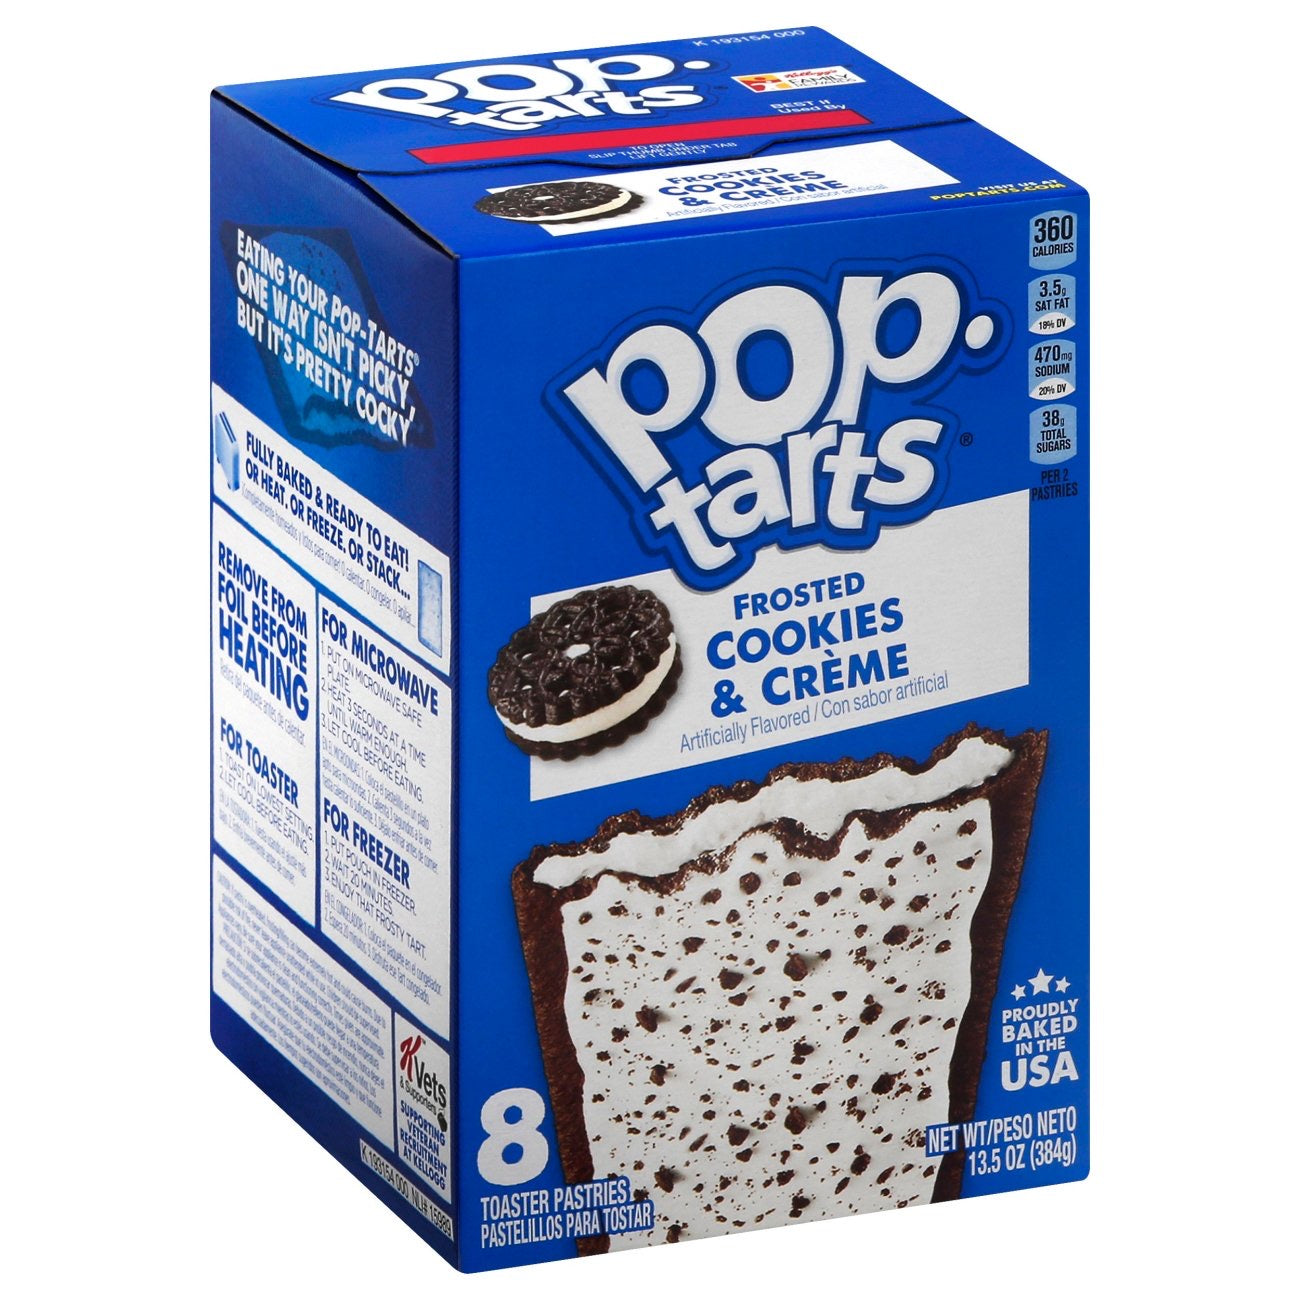 Pop tarts Kellogg's Frosted Cookies and Creme 8 pcs